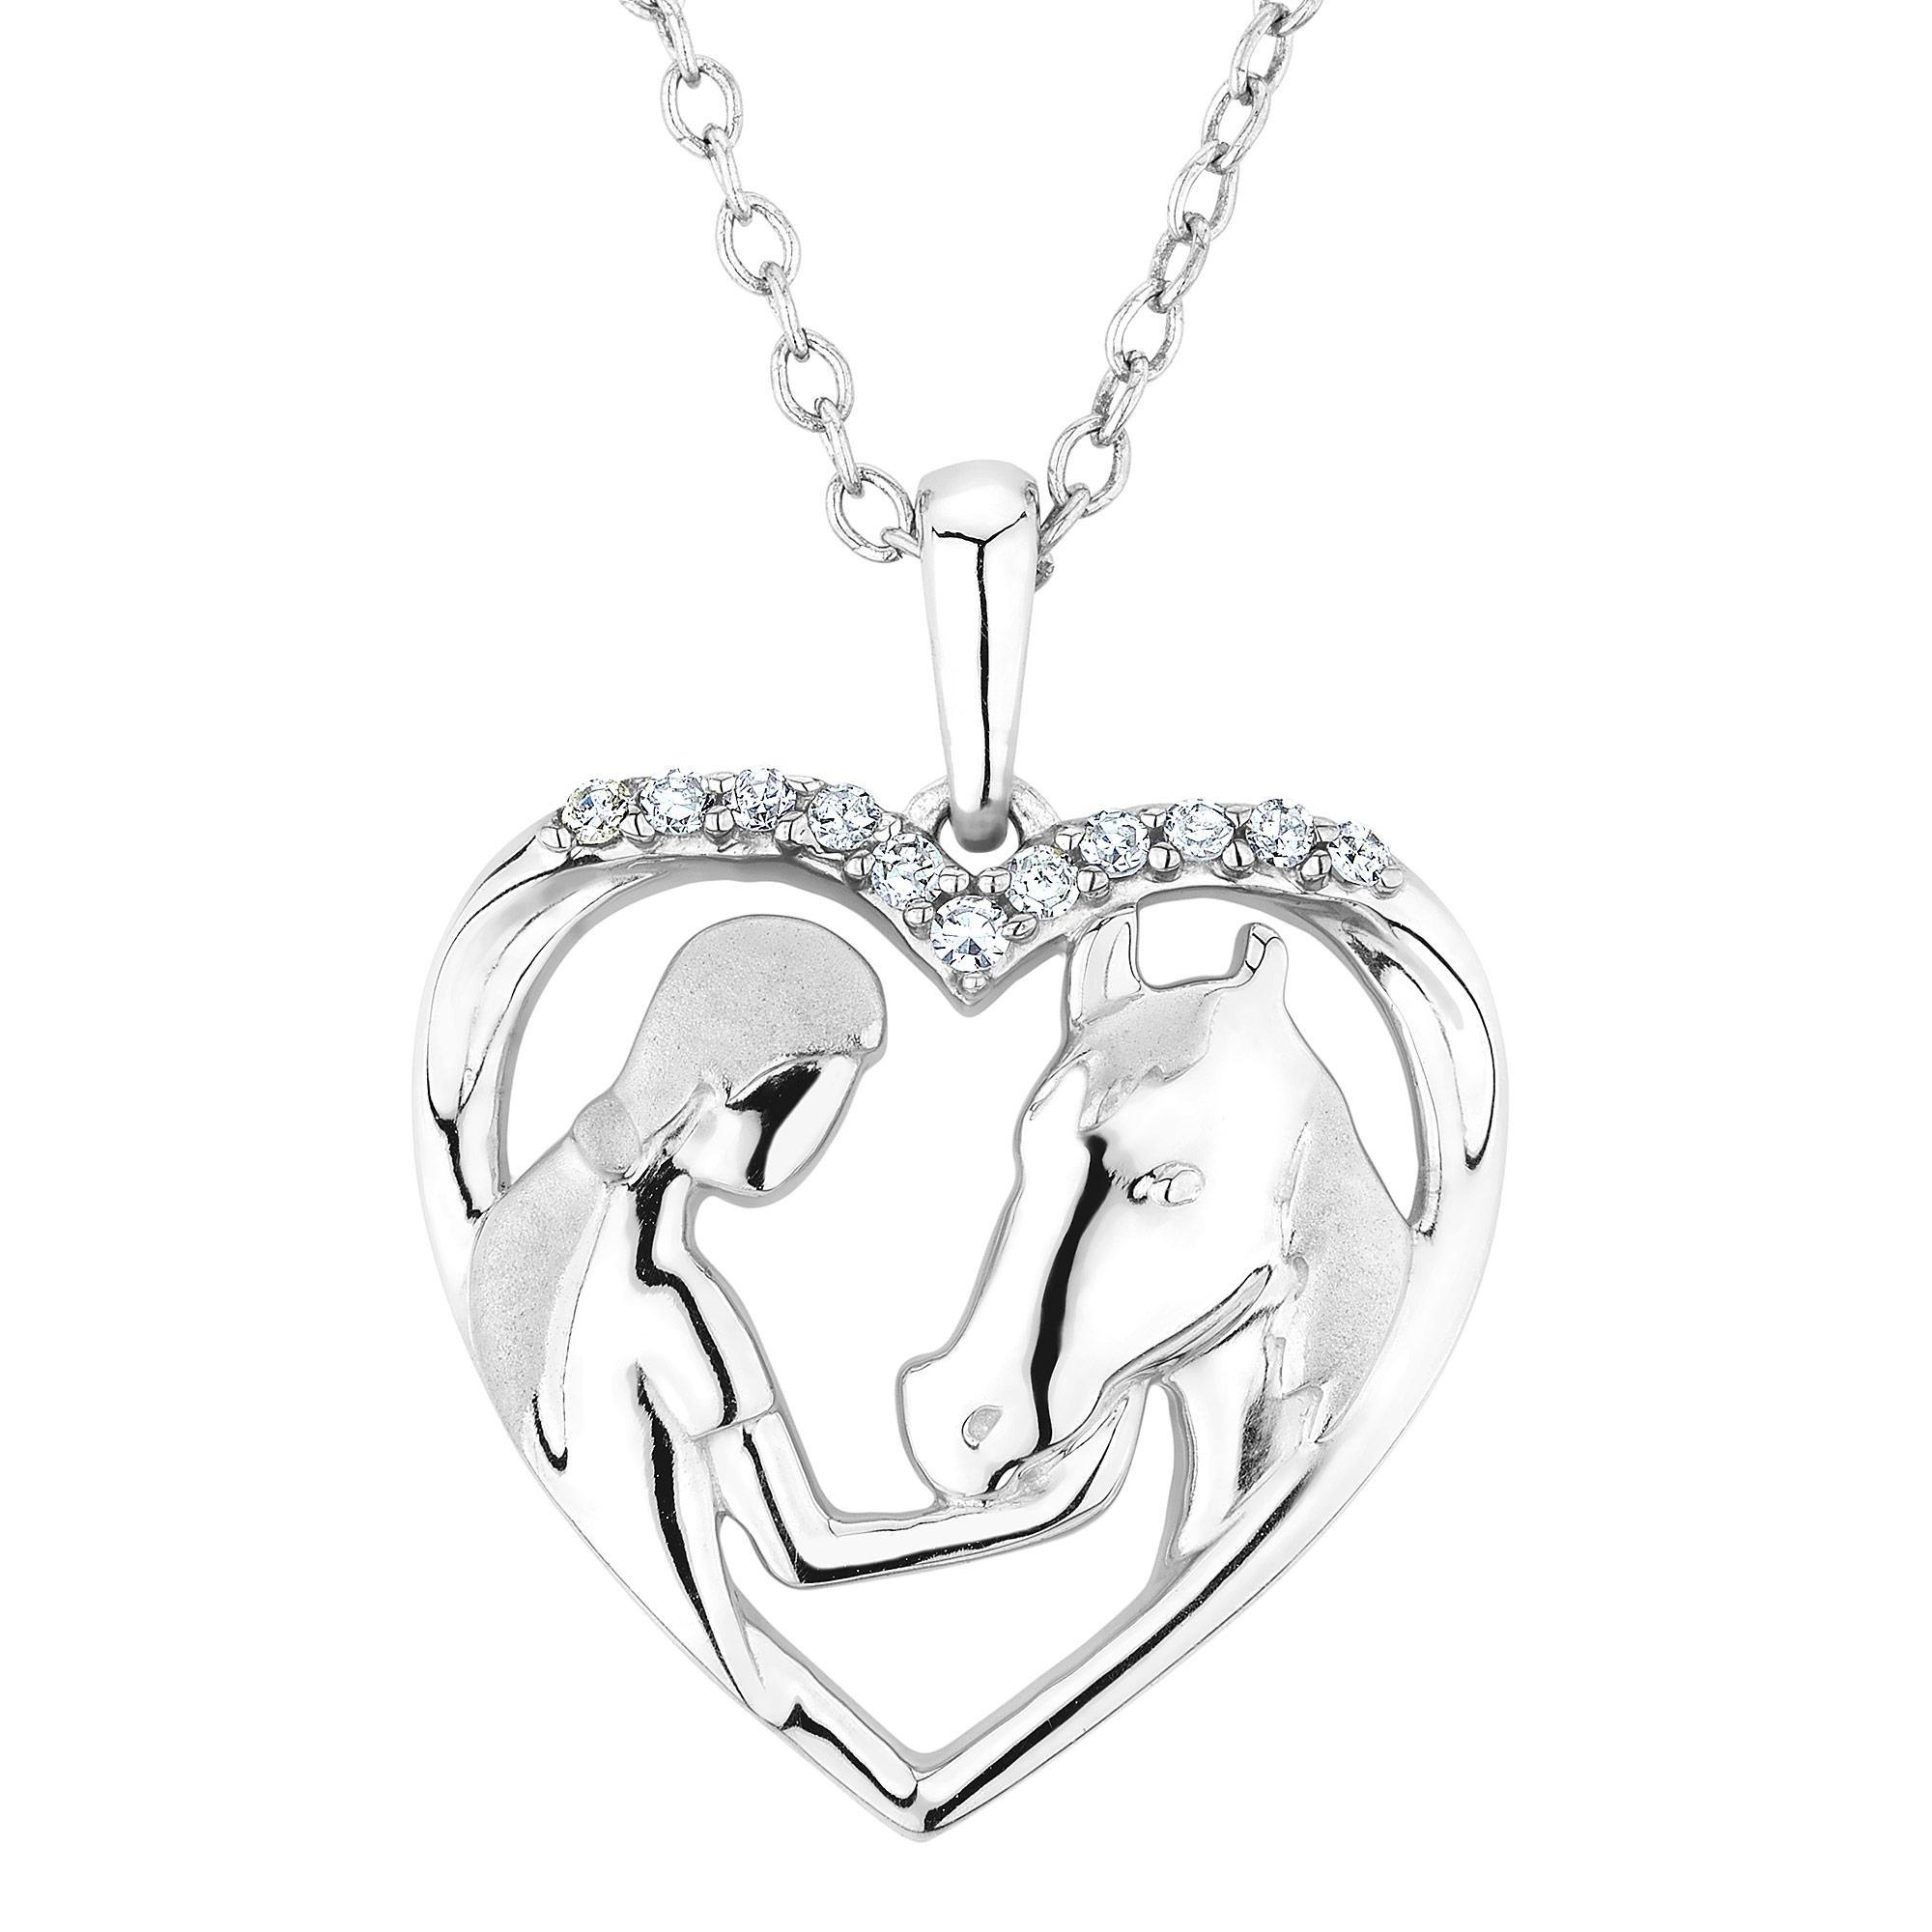 Aspca® tendervoices® lady and horse heart pendant 1 15ctw